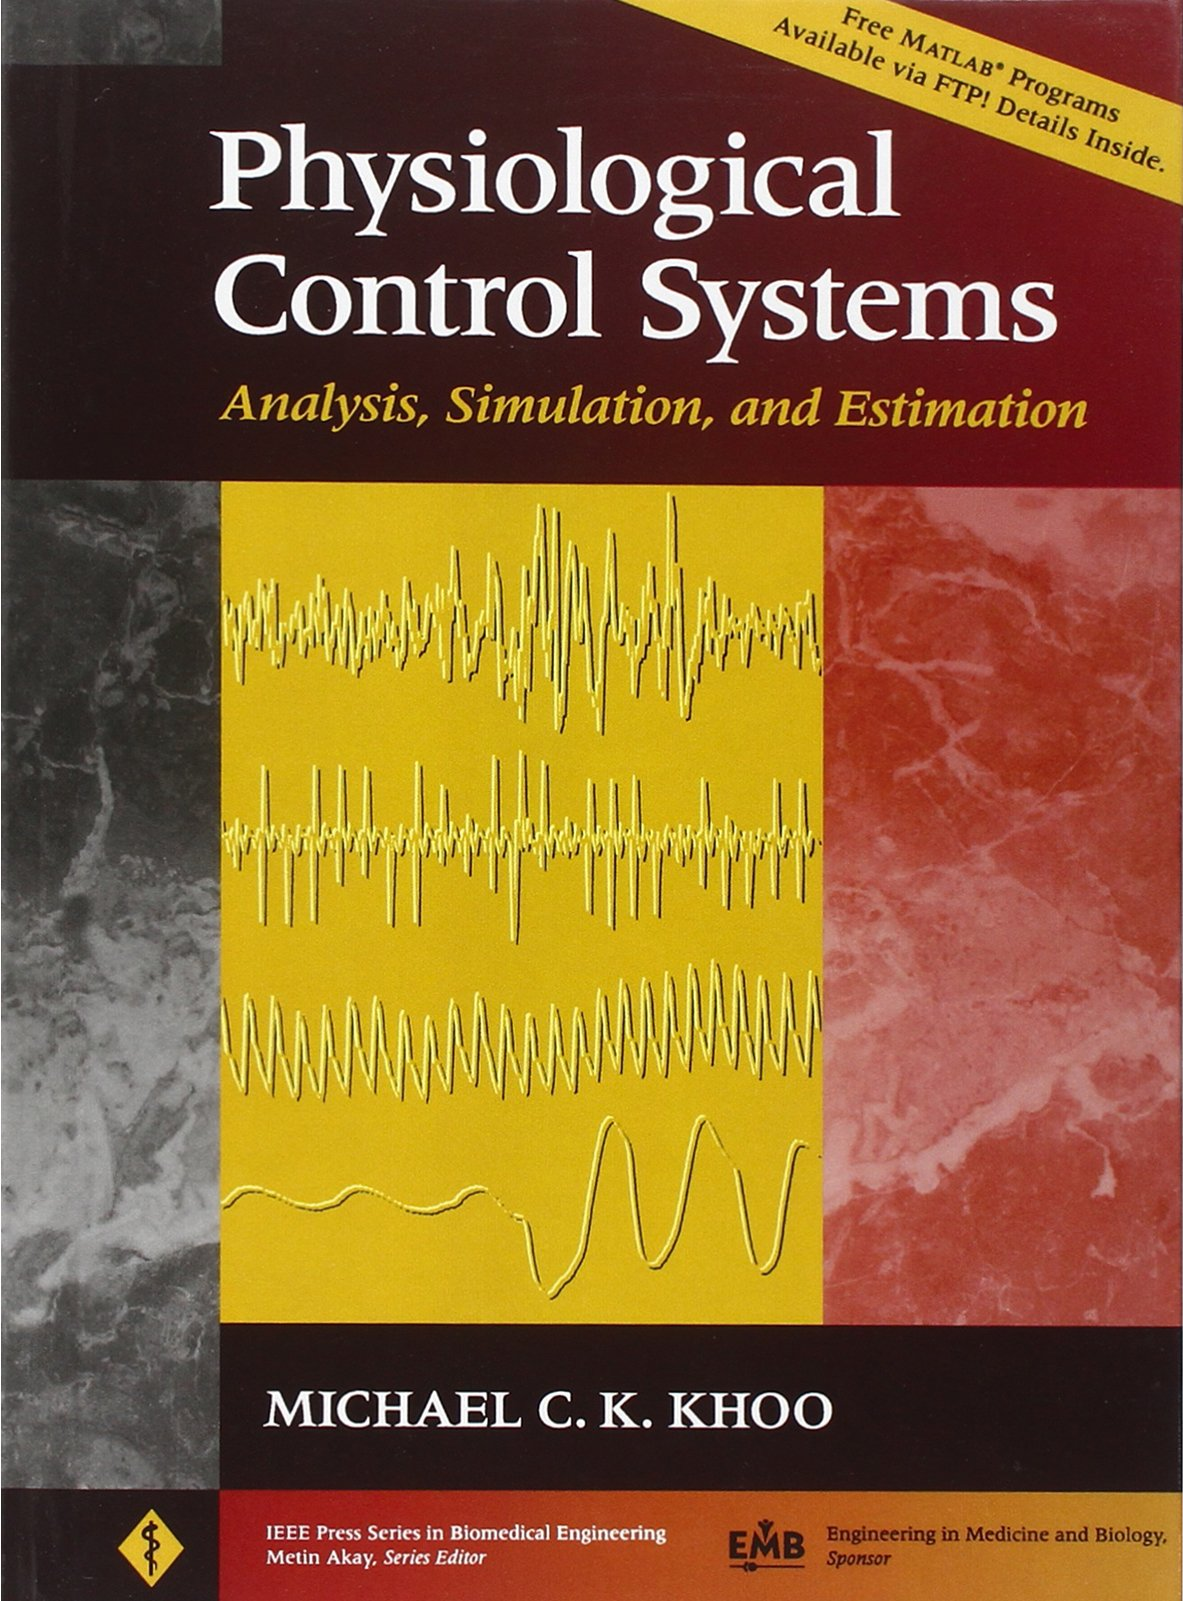 Buy physiological control systems analysis simulation and buy physiological control systems analysis simulation and estimation ieee press series on biomedical engineering book online at low prices in india fandeluxe Images